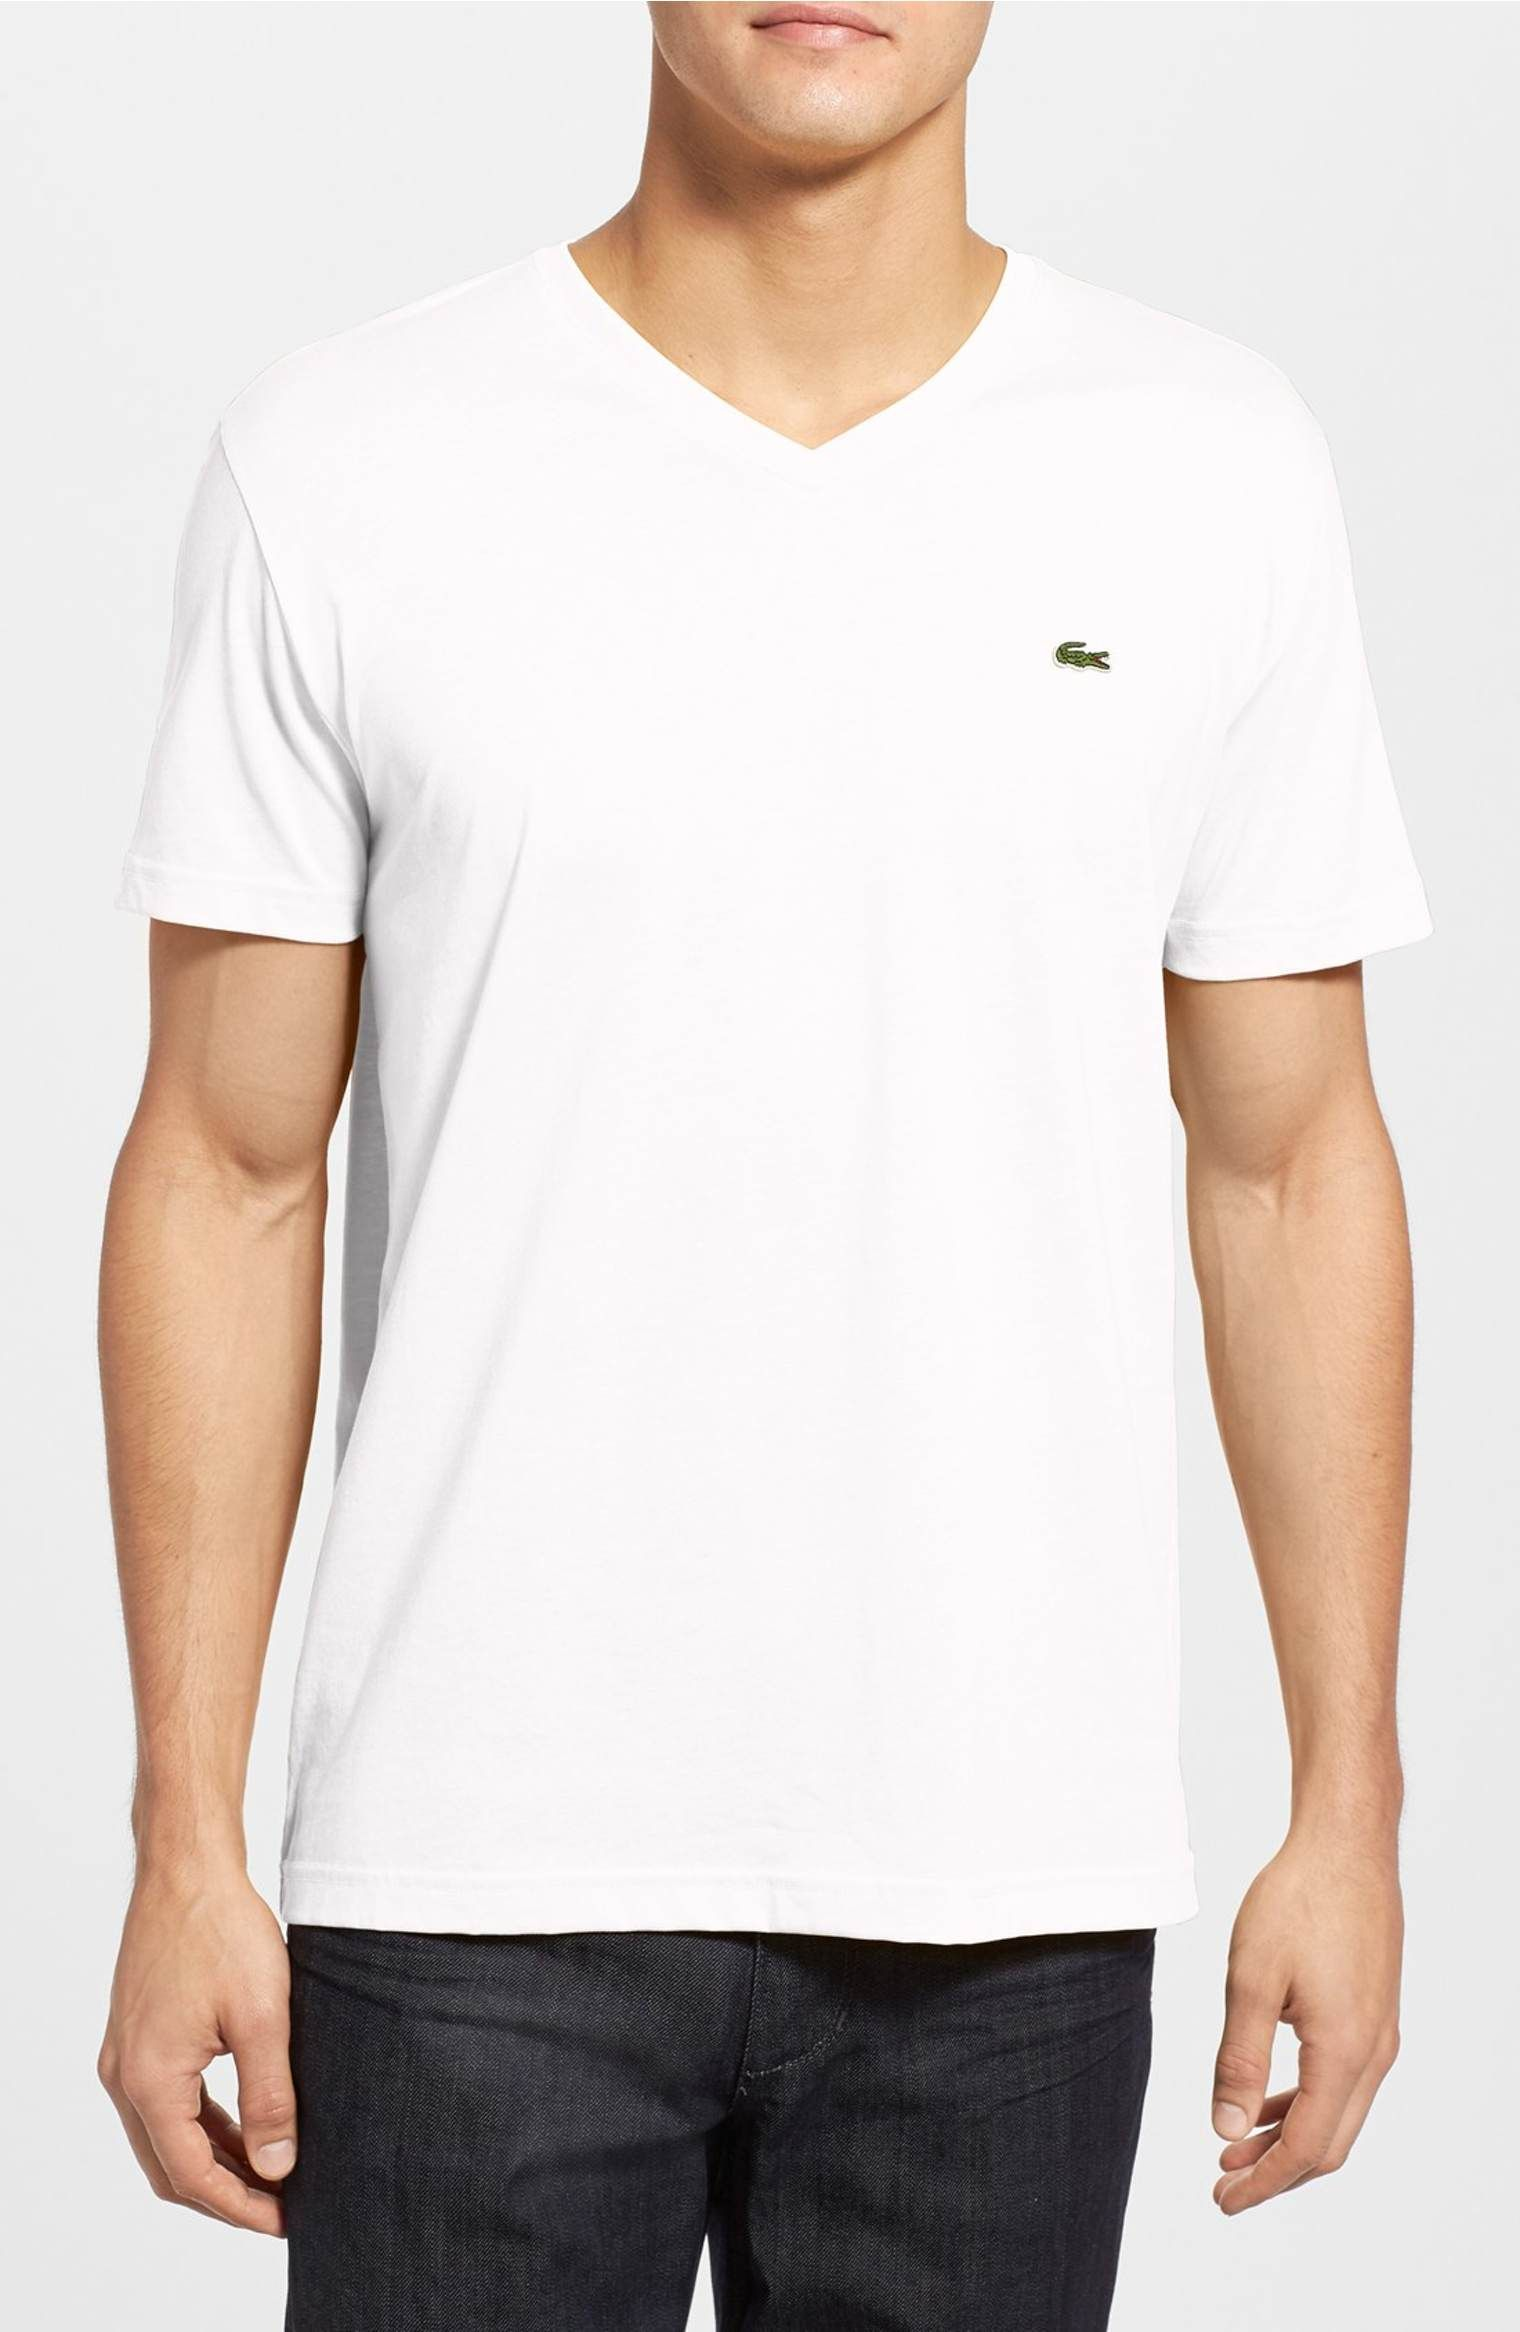 Main image lacoste pima cotton jersey vneck tshirt wish